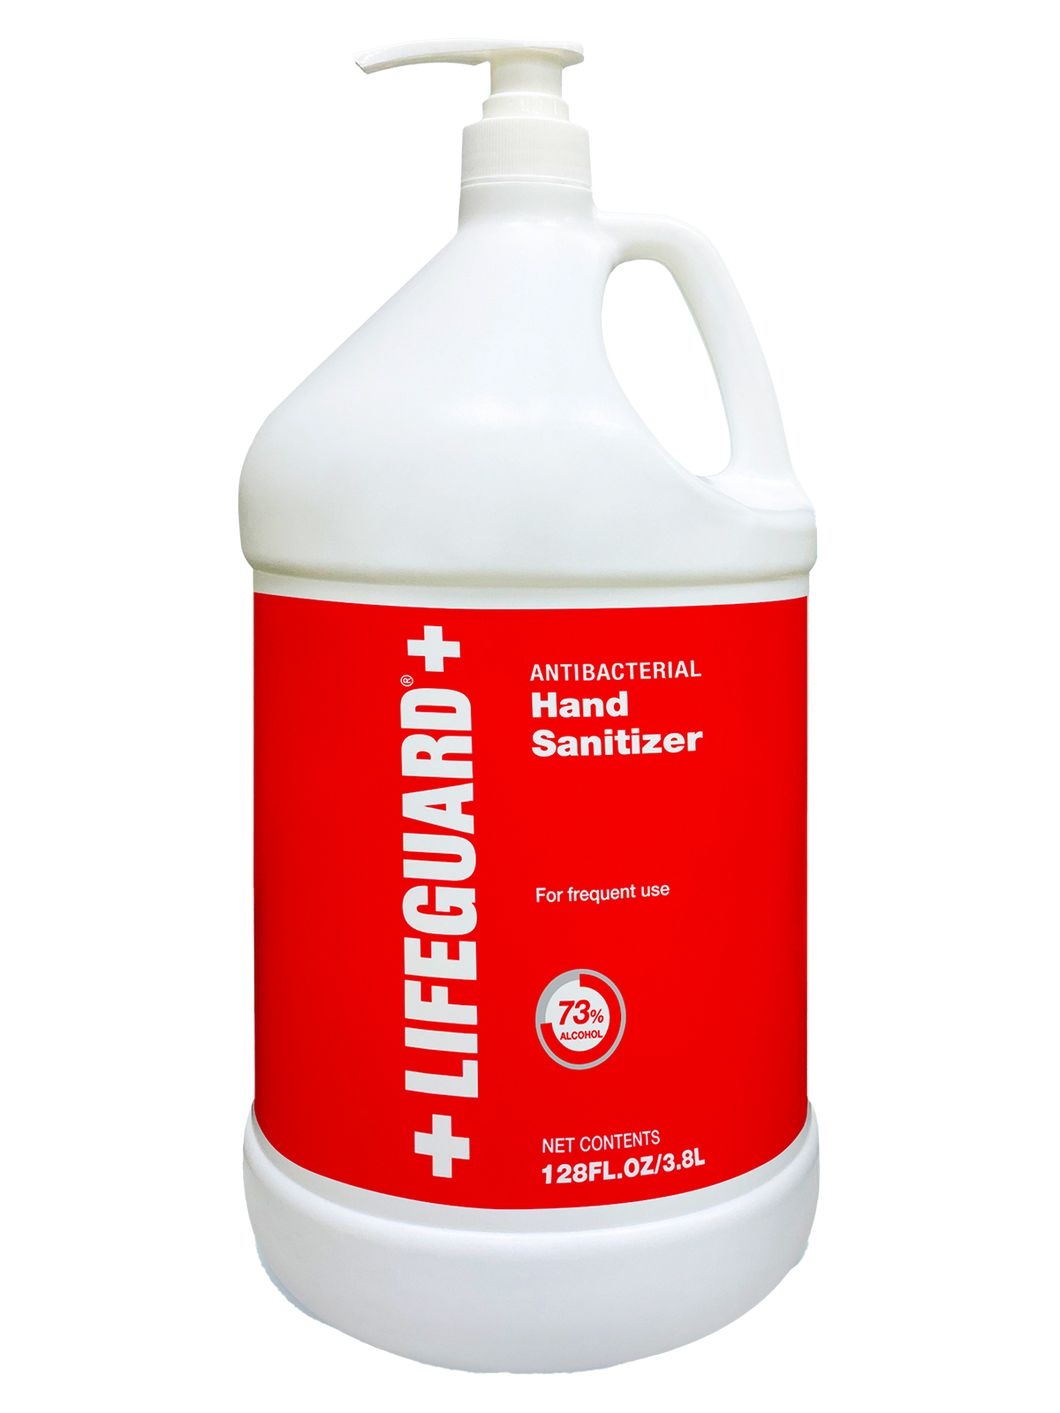 LIFEGUARD ANTISEPTIC LIQUID HAND SANITIZER 1 Gallon (4 per case) $25.95 each